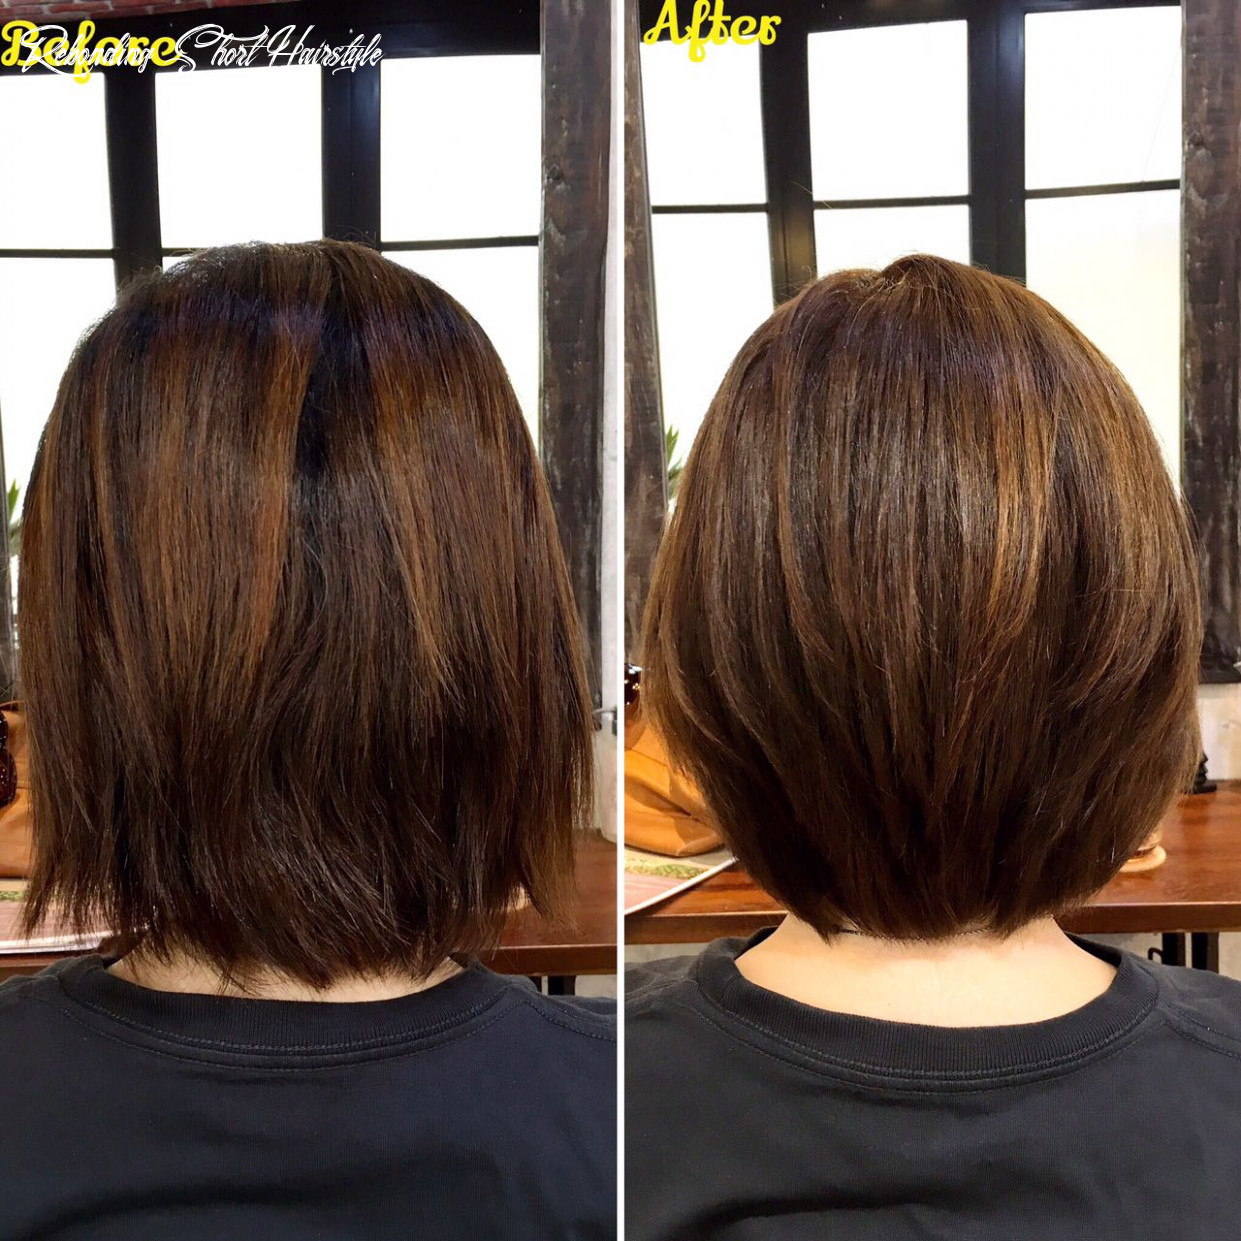 Best hair salons for rebonding in 11 / 11 rebonding short hairstyle